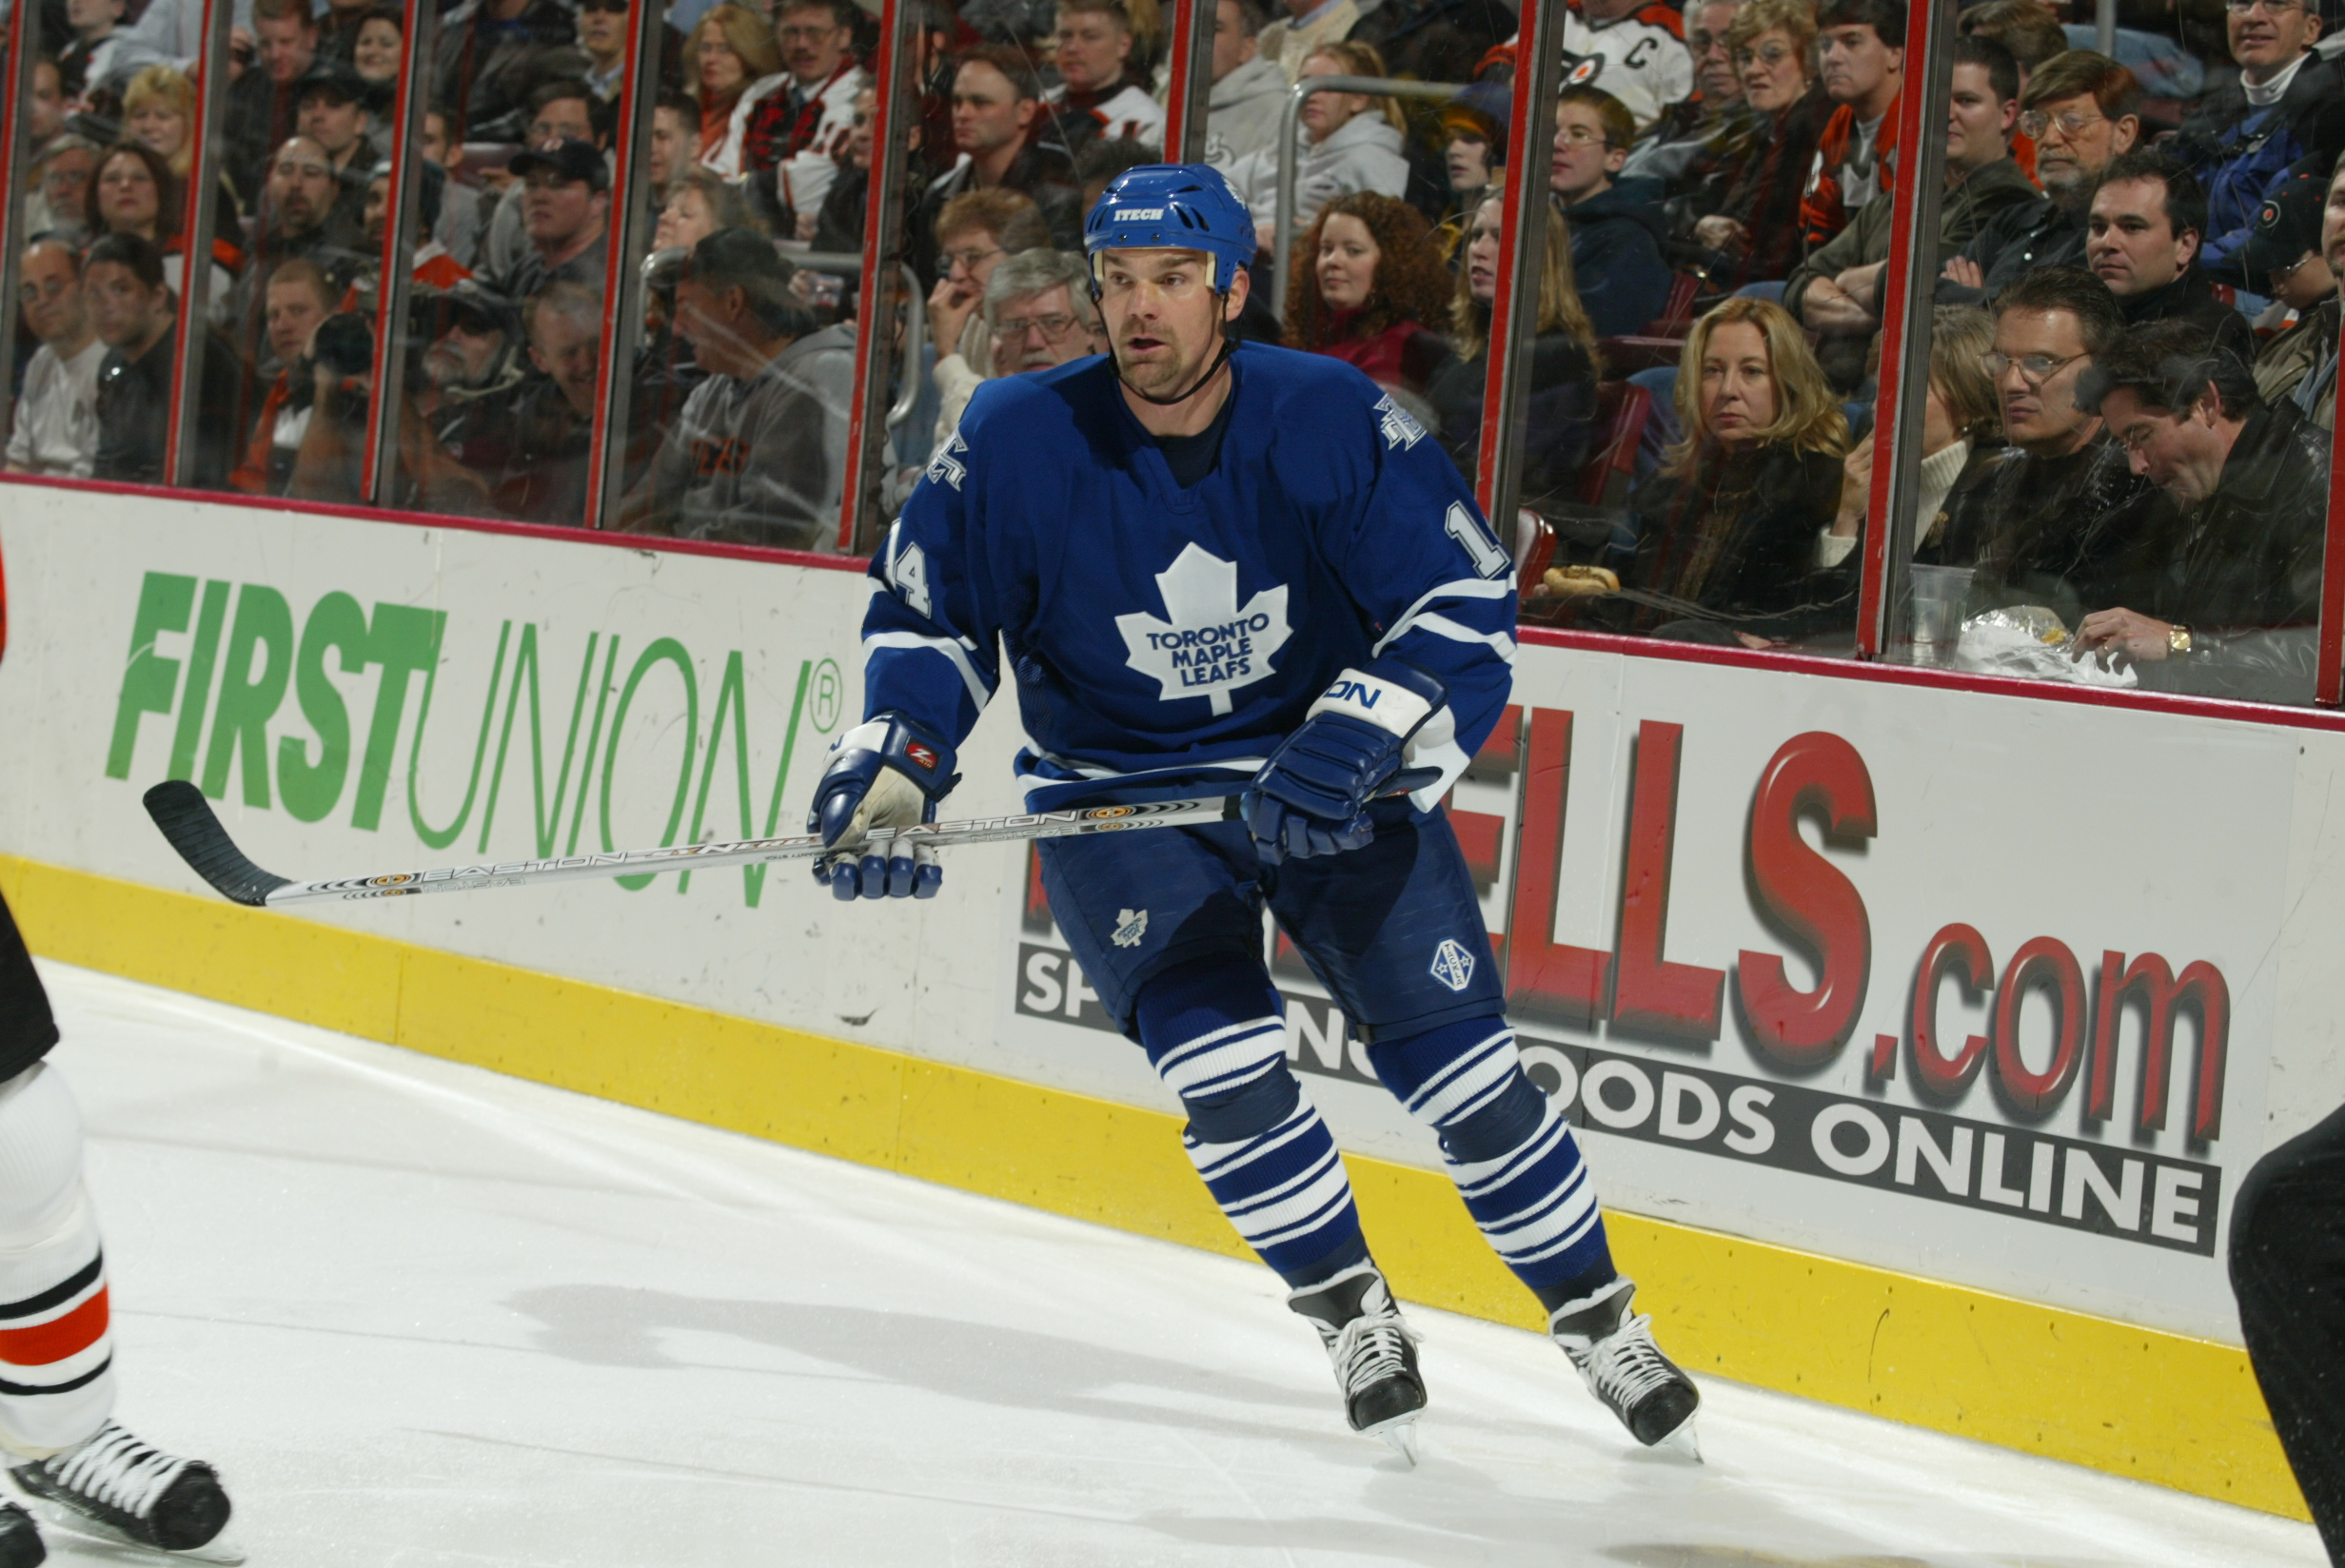 Maple Leafs veteran Joffrey Lupul apologizes for comments made on social media